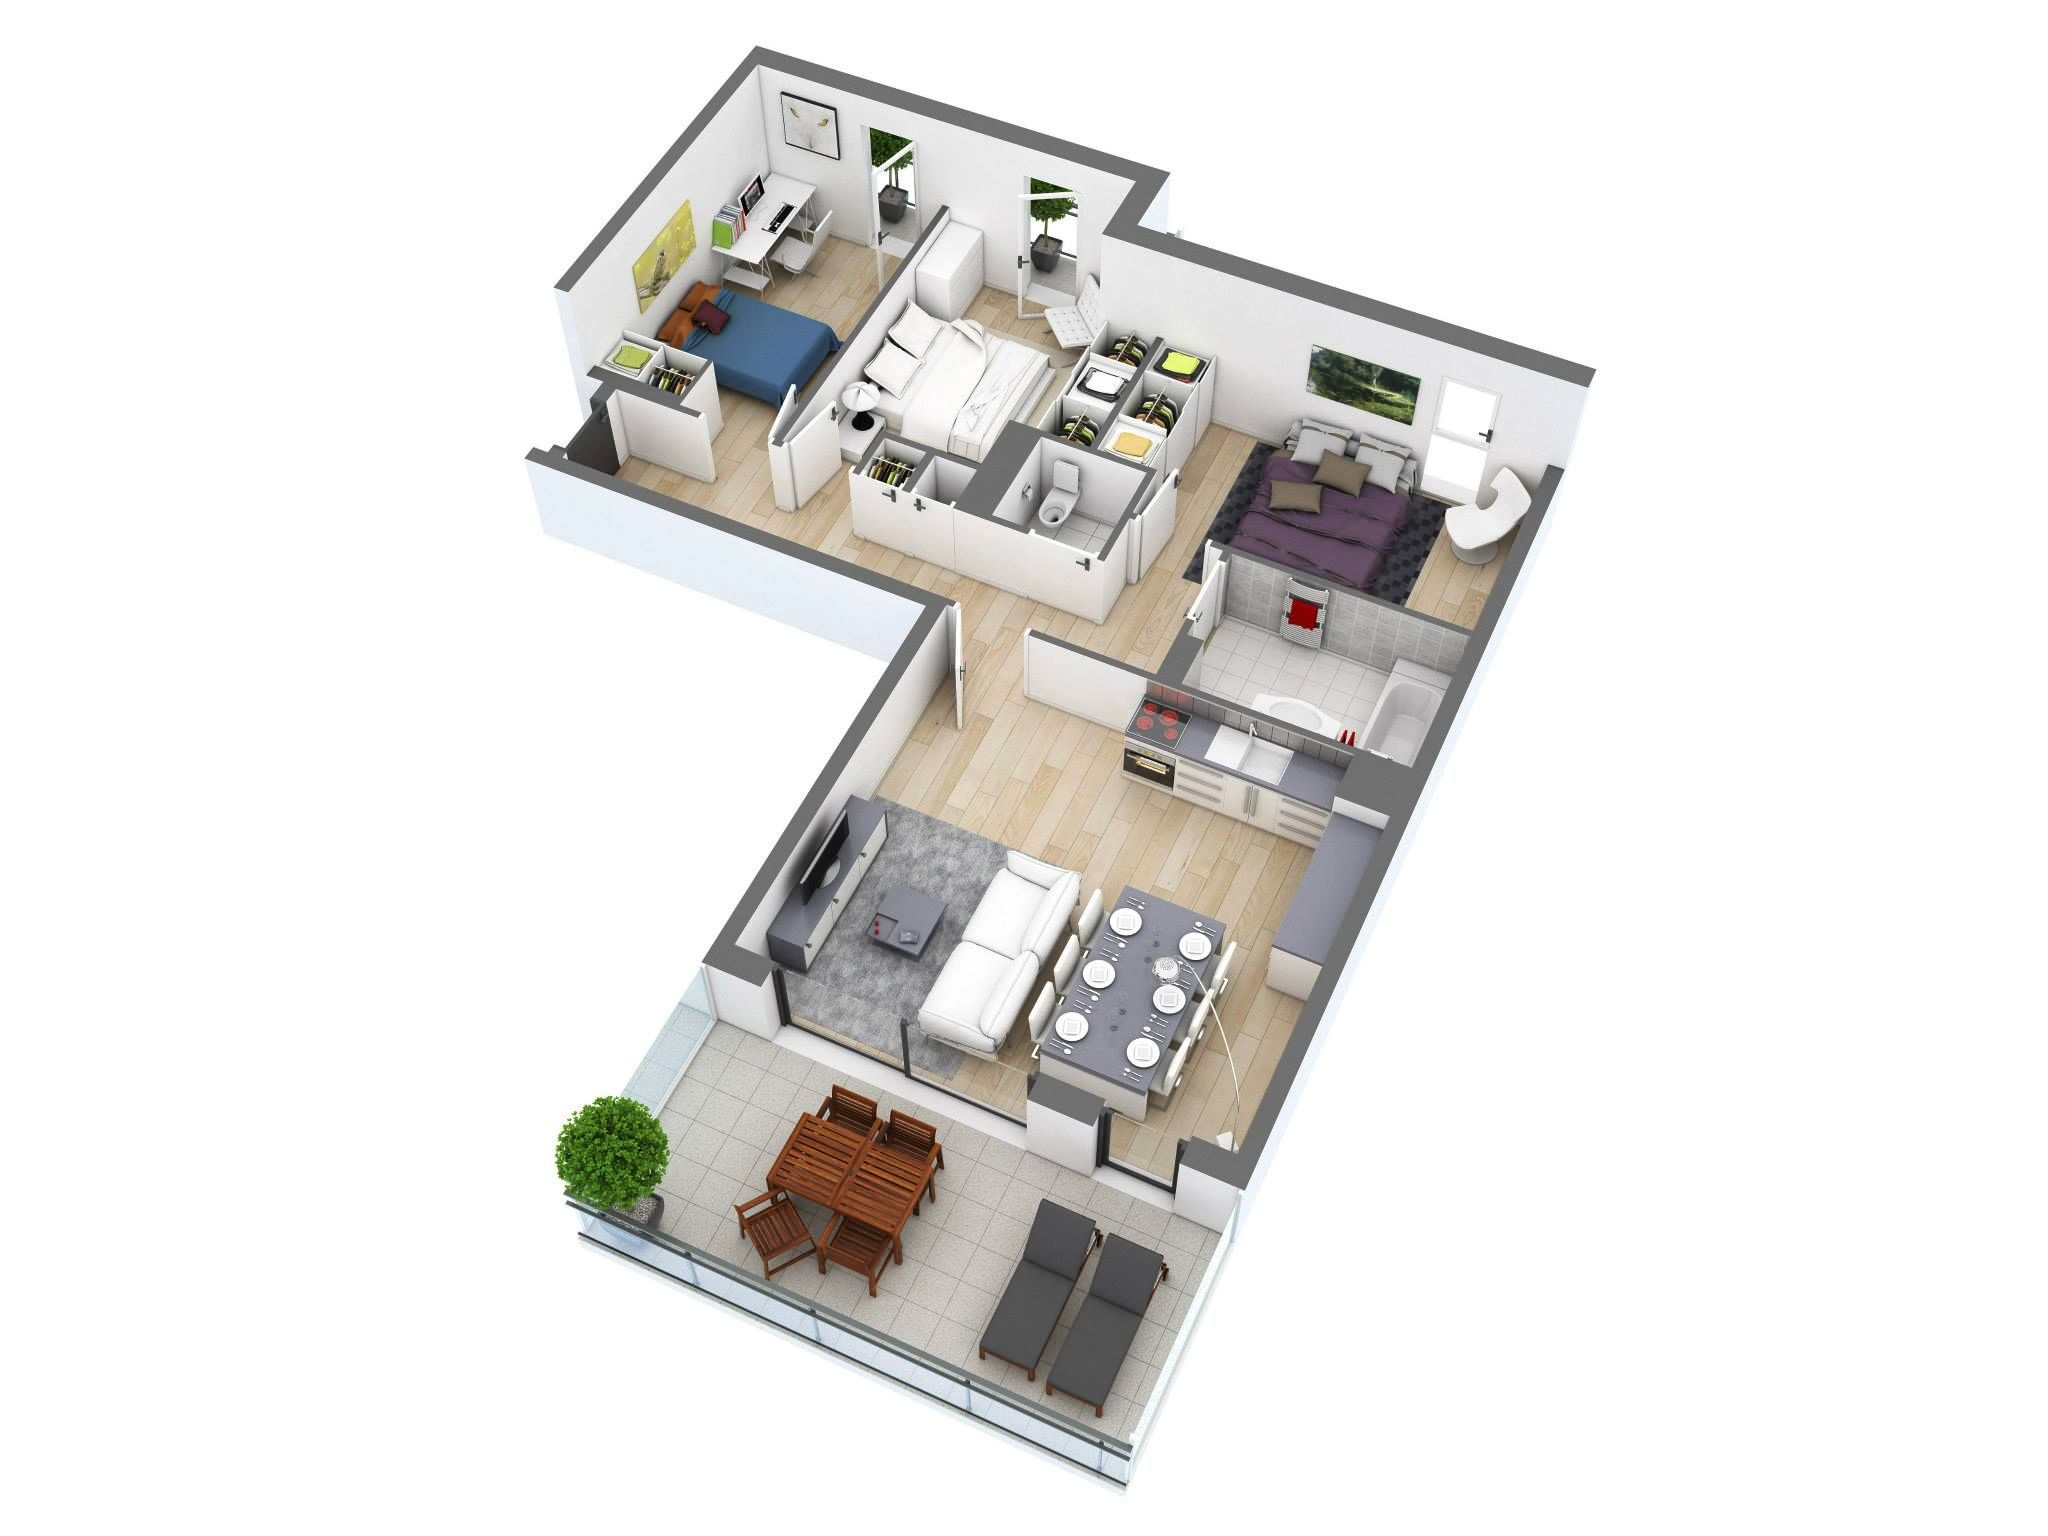 Understanding 3D Floor Plans And Finding The Right Layout For You on car house plans, digital house plans, gaming house plans, 3-dimensional house plans, architecture house plans, mine craft house plans, paper home plans, hd house plans, 3-bedroom ranch house plans, 4d house plans, traditional house plans, floor plans, aerial house plans, tiny house plans, luxury contemporary house plans, web house plans, unique house plans, small house plans, beach house plans, windows house plans,